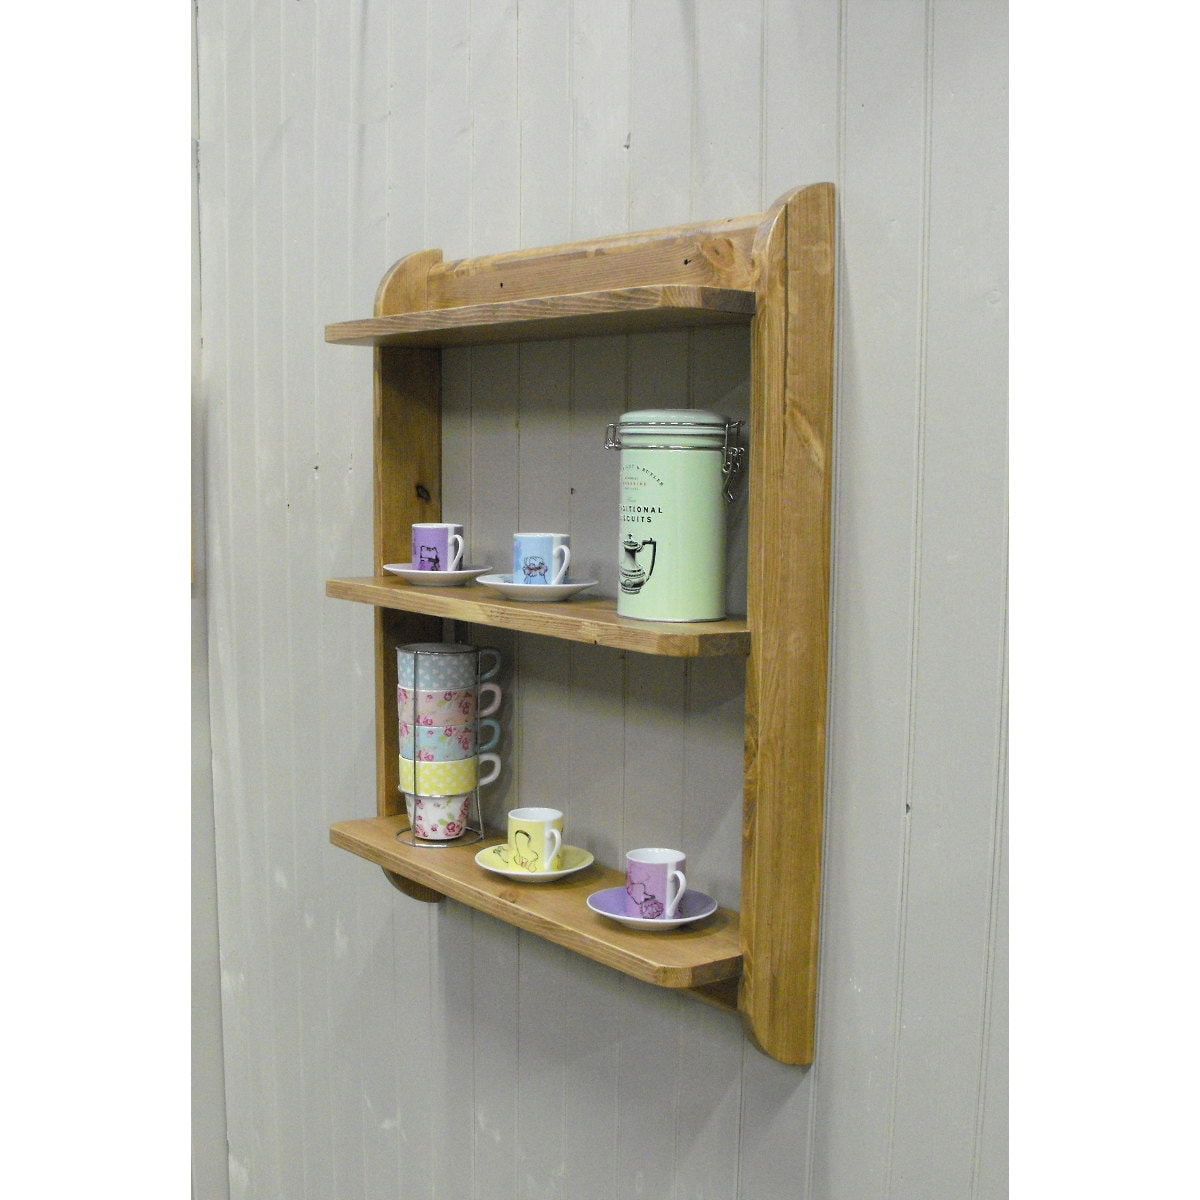 Shelves For Kitchen Wall: Wall Mounted Shelf Unit. Kitchen Shelves Or Cd Dvd And